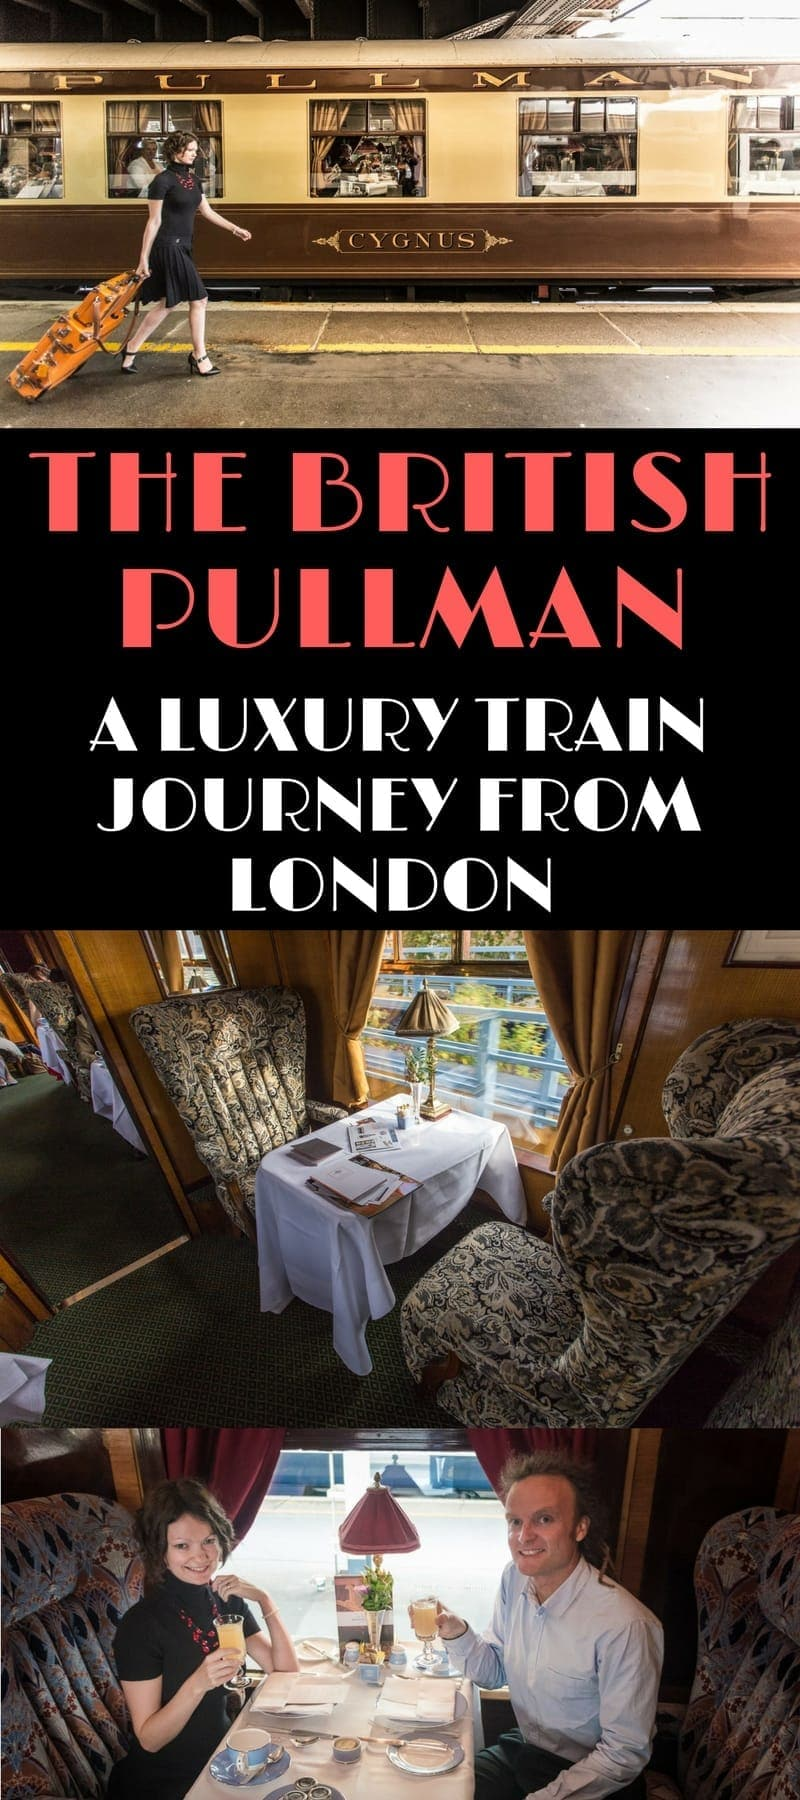 A guide to taking a ride on the Belmond British Pullman train - a luxury train composed of beautifully restored British Pullman train carriages. We'll share info on its routes, cost, how to book it, and share loads of photos from our own journey.